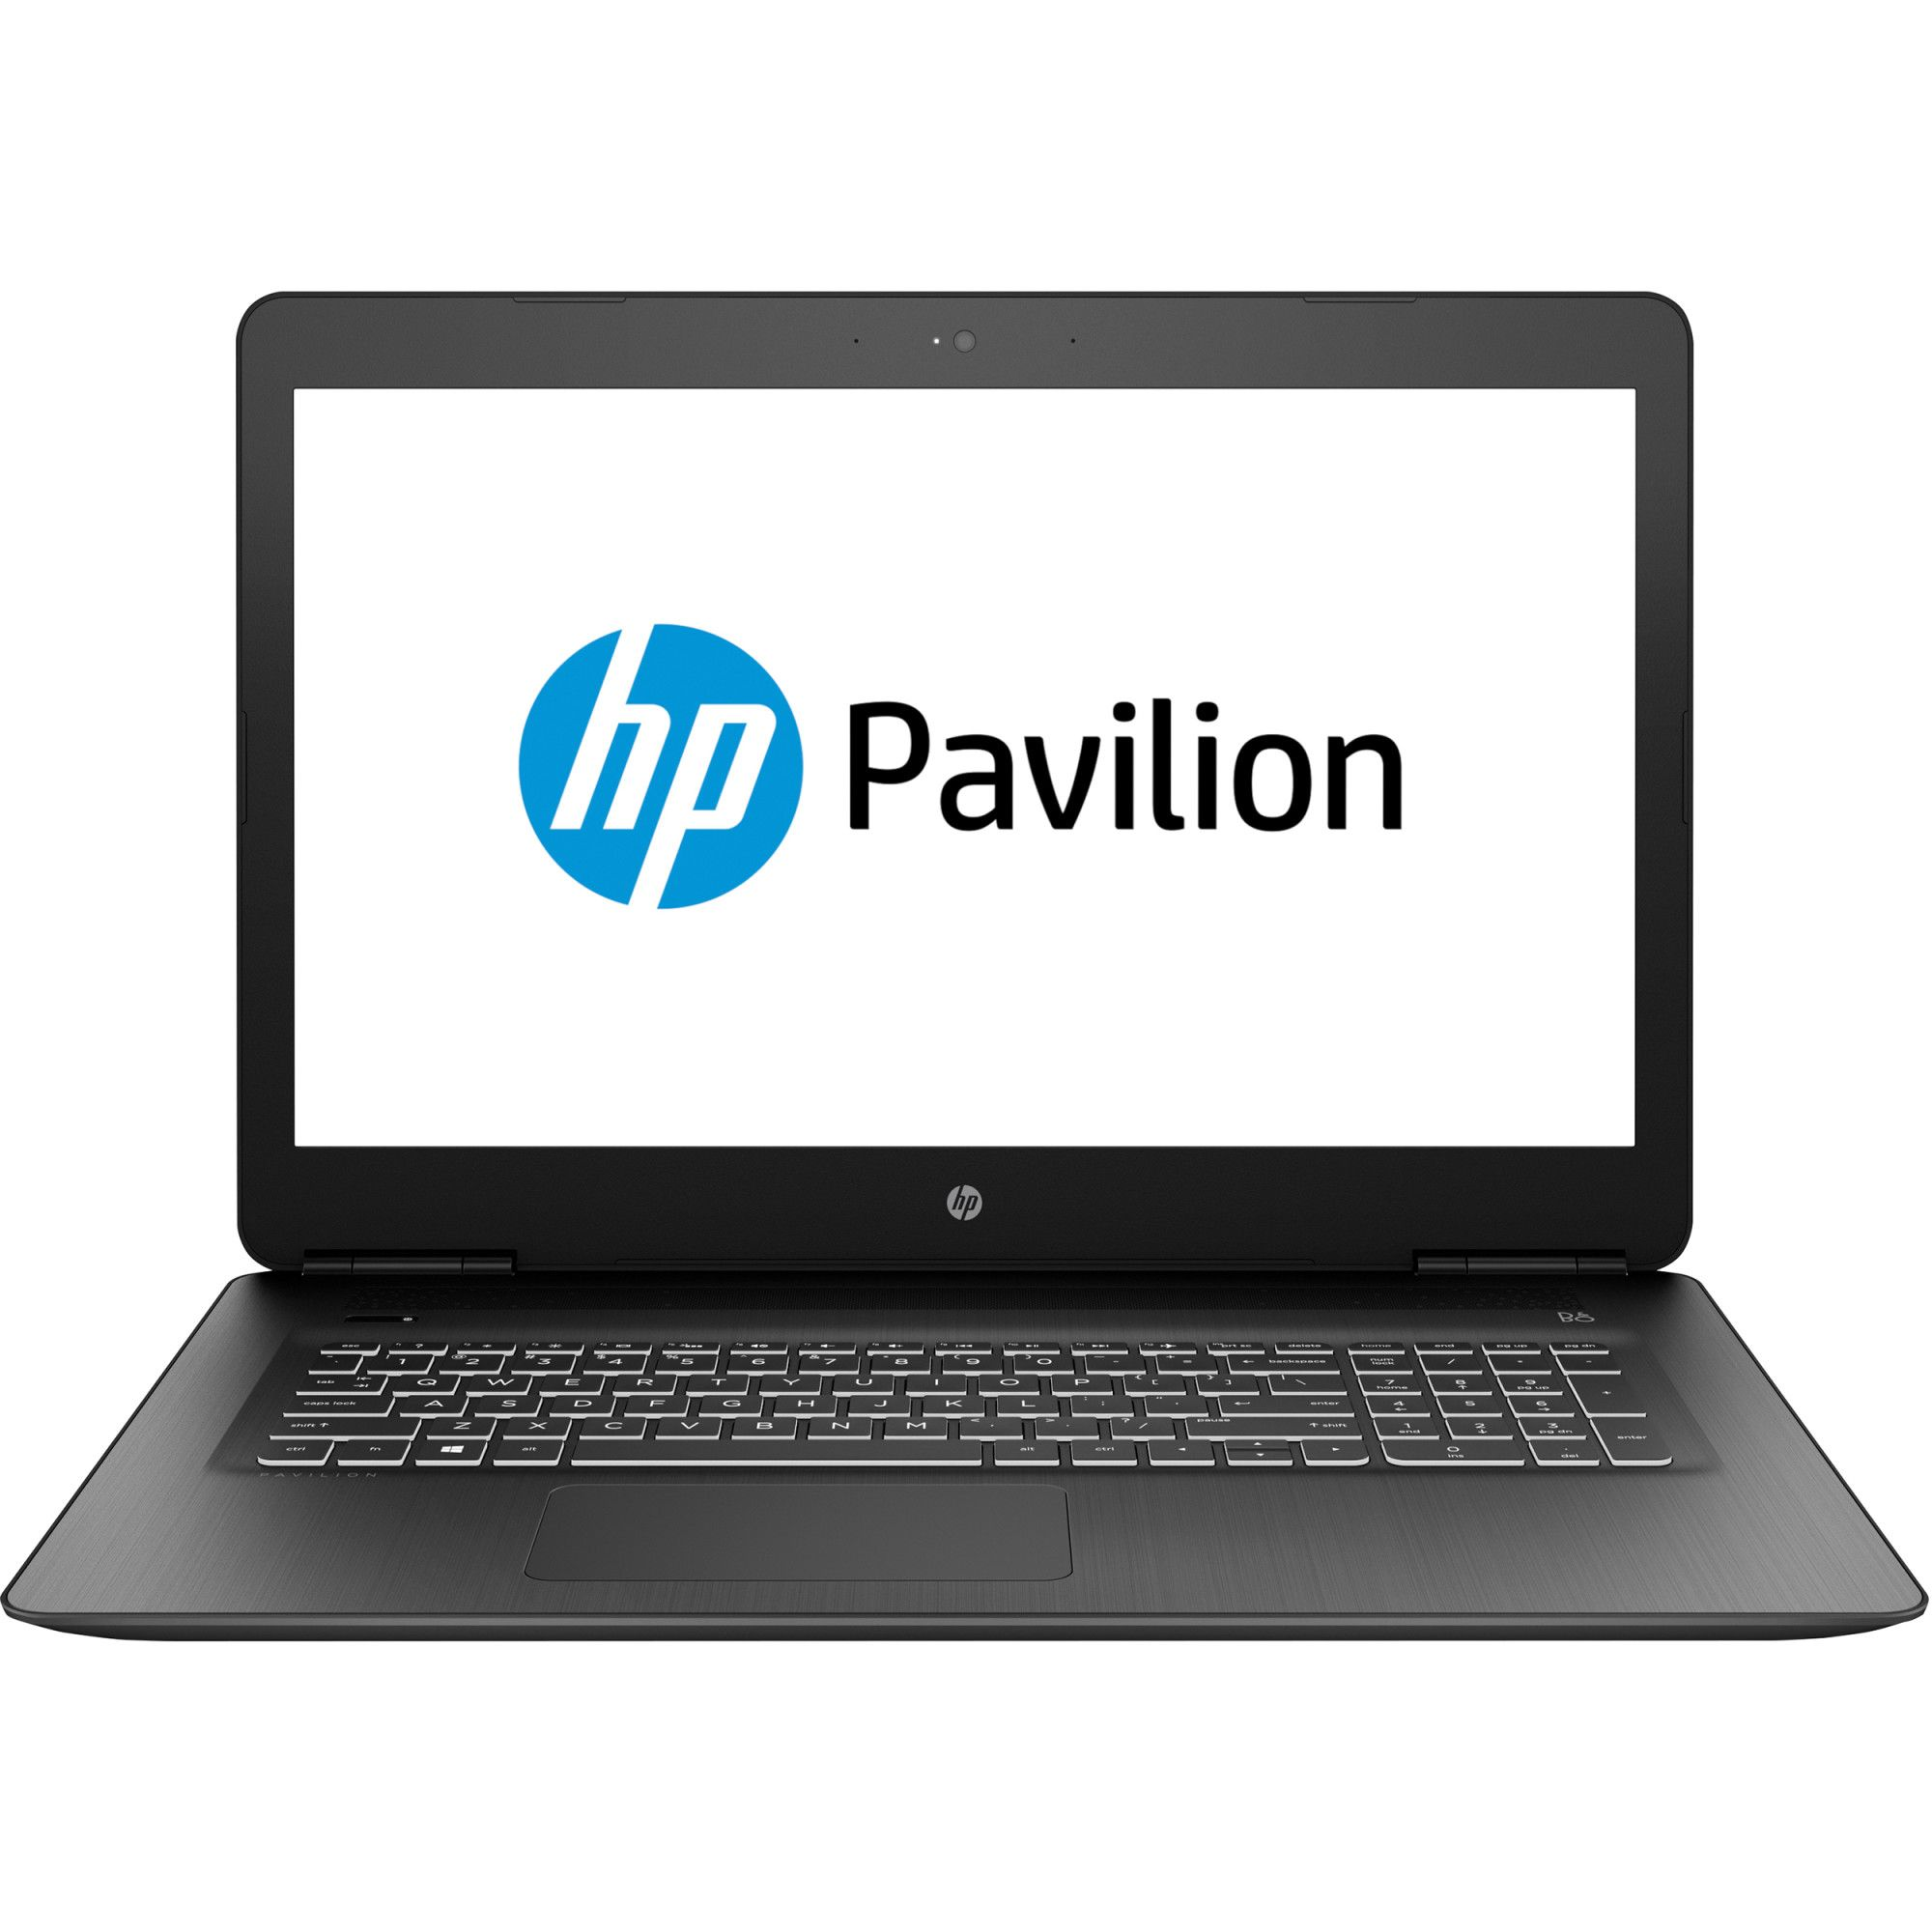 Notebook HP Pavilion 17.3 Full HD Intel Core i5-8300H GTX 1050 Ti-4GB RAM 8GB HDD 1TB FreeDOS Negru